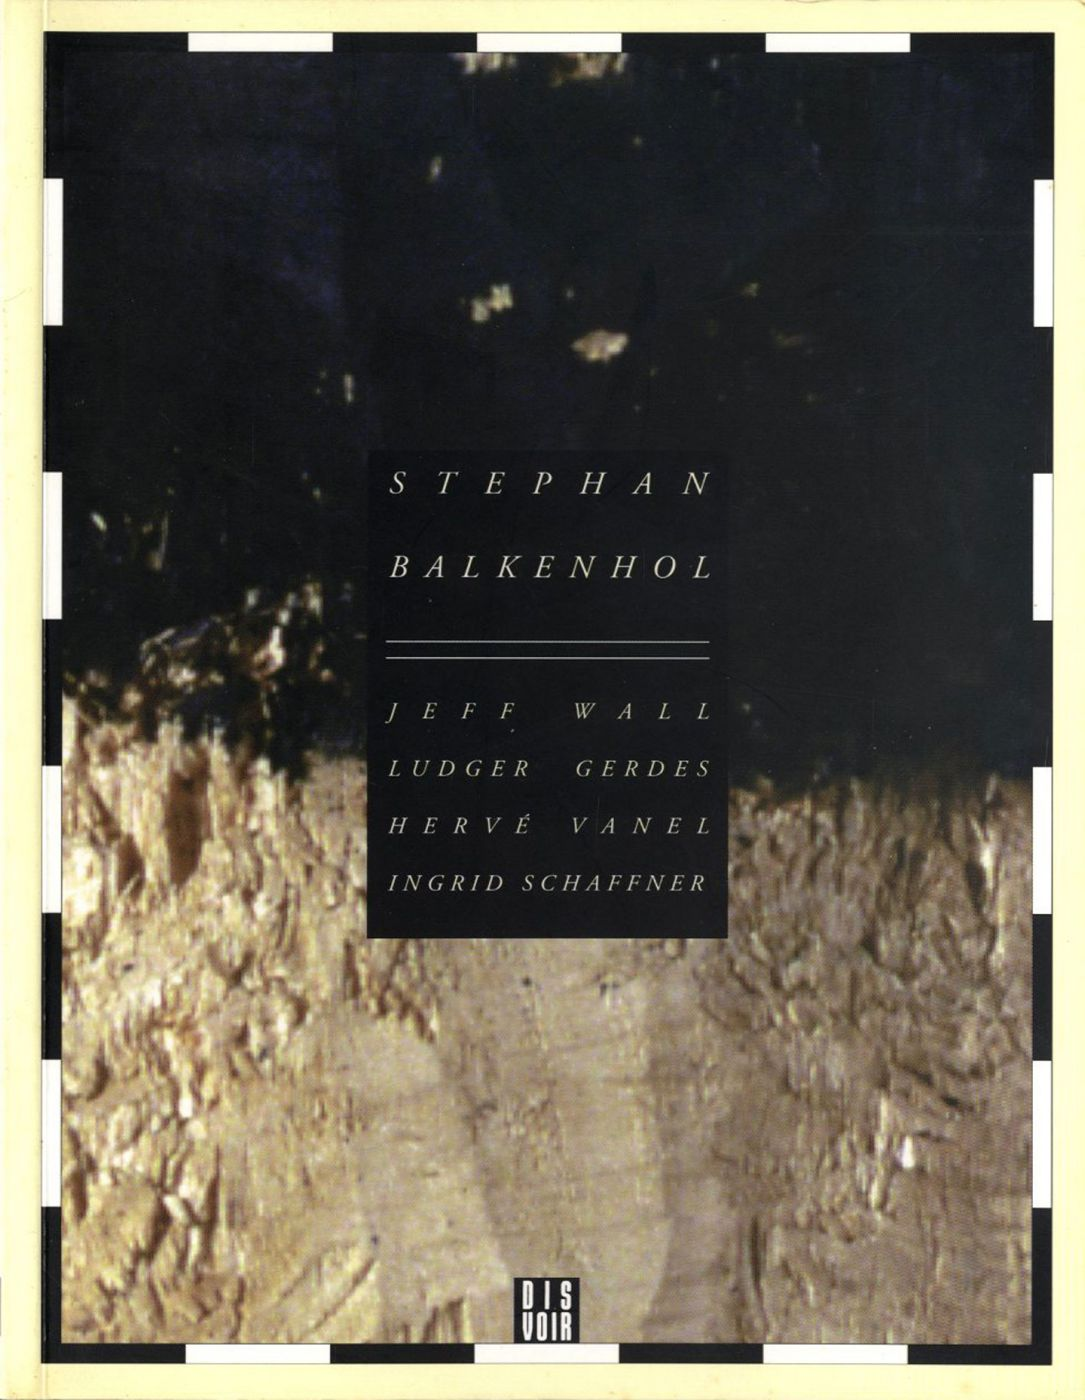 jeff wall selected essays